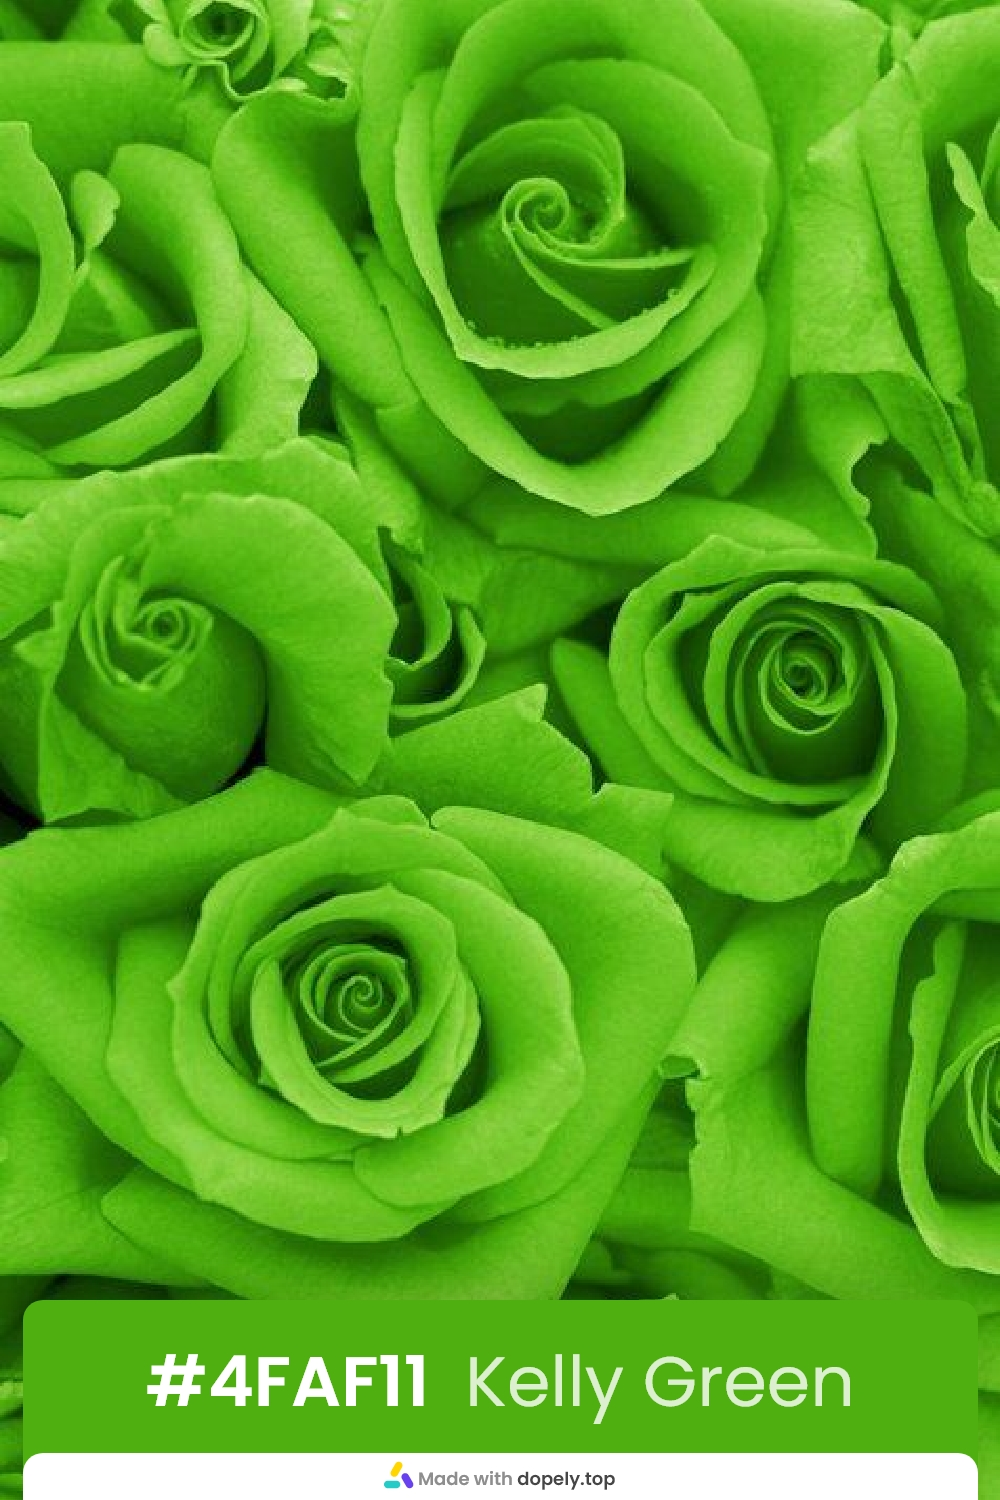 green color rose flower meaning with hex code